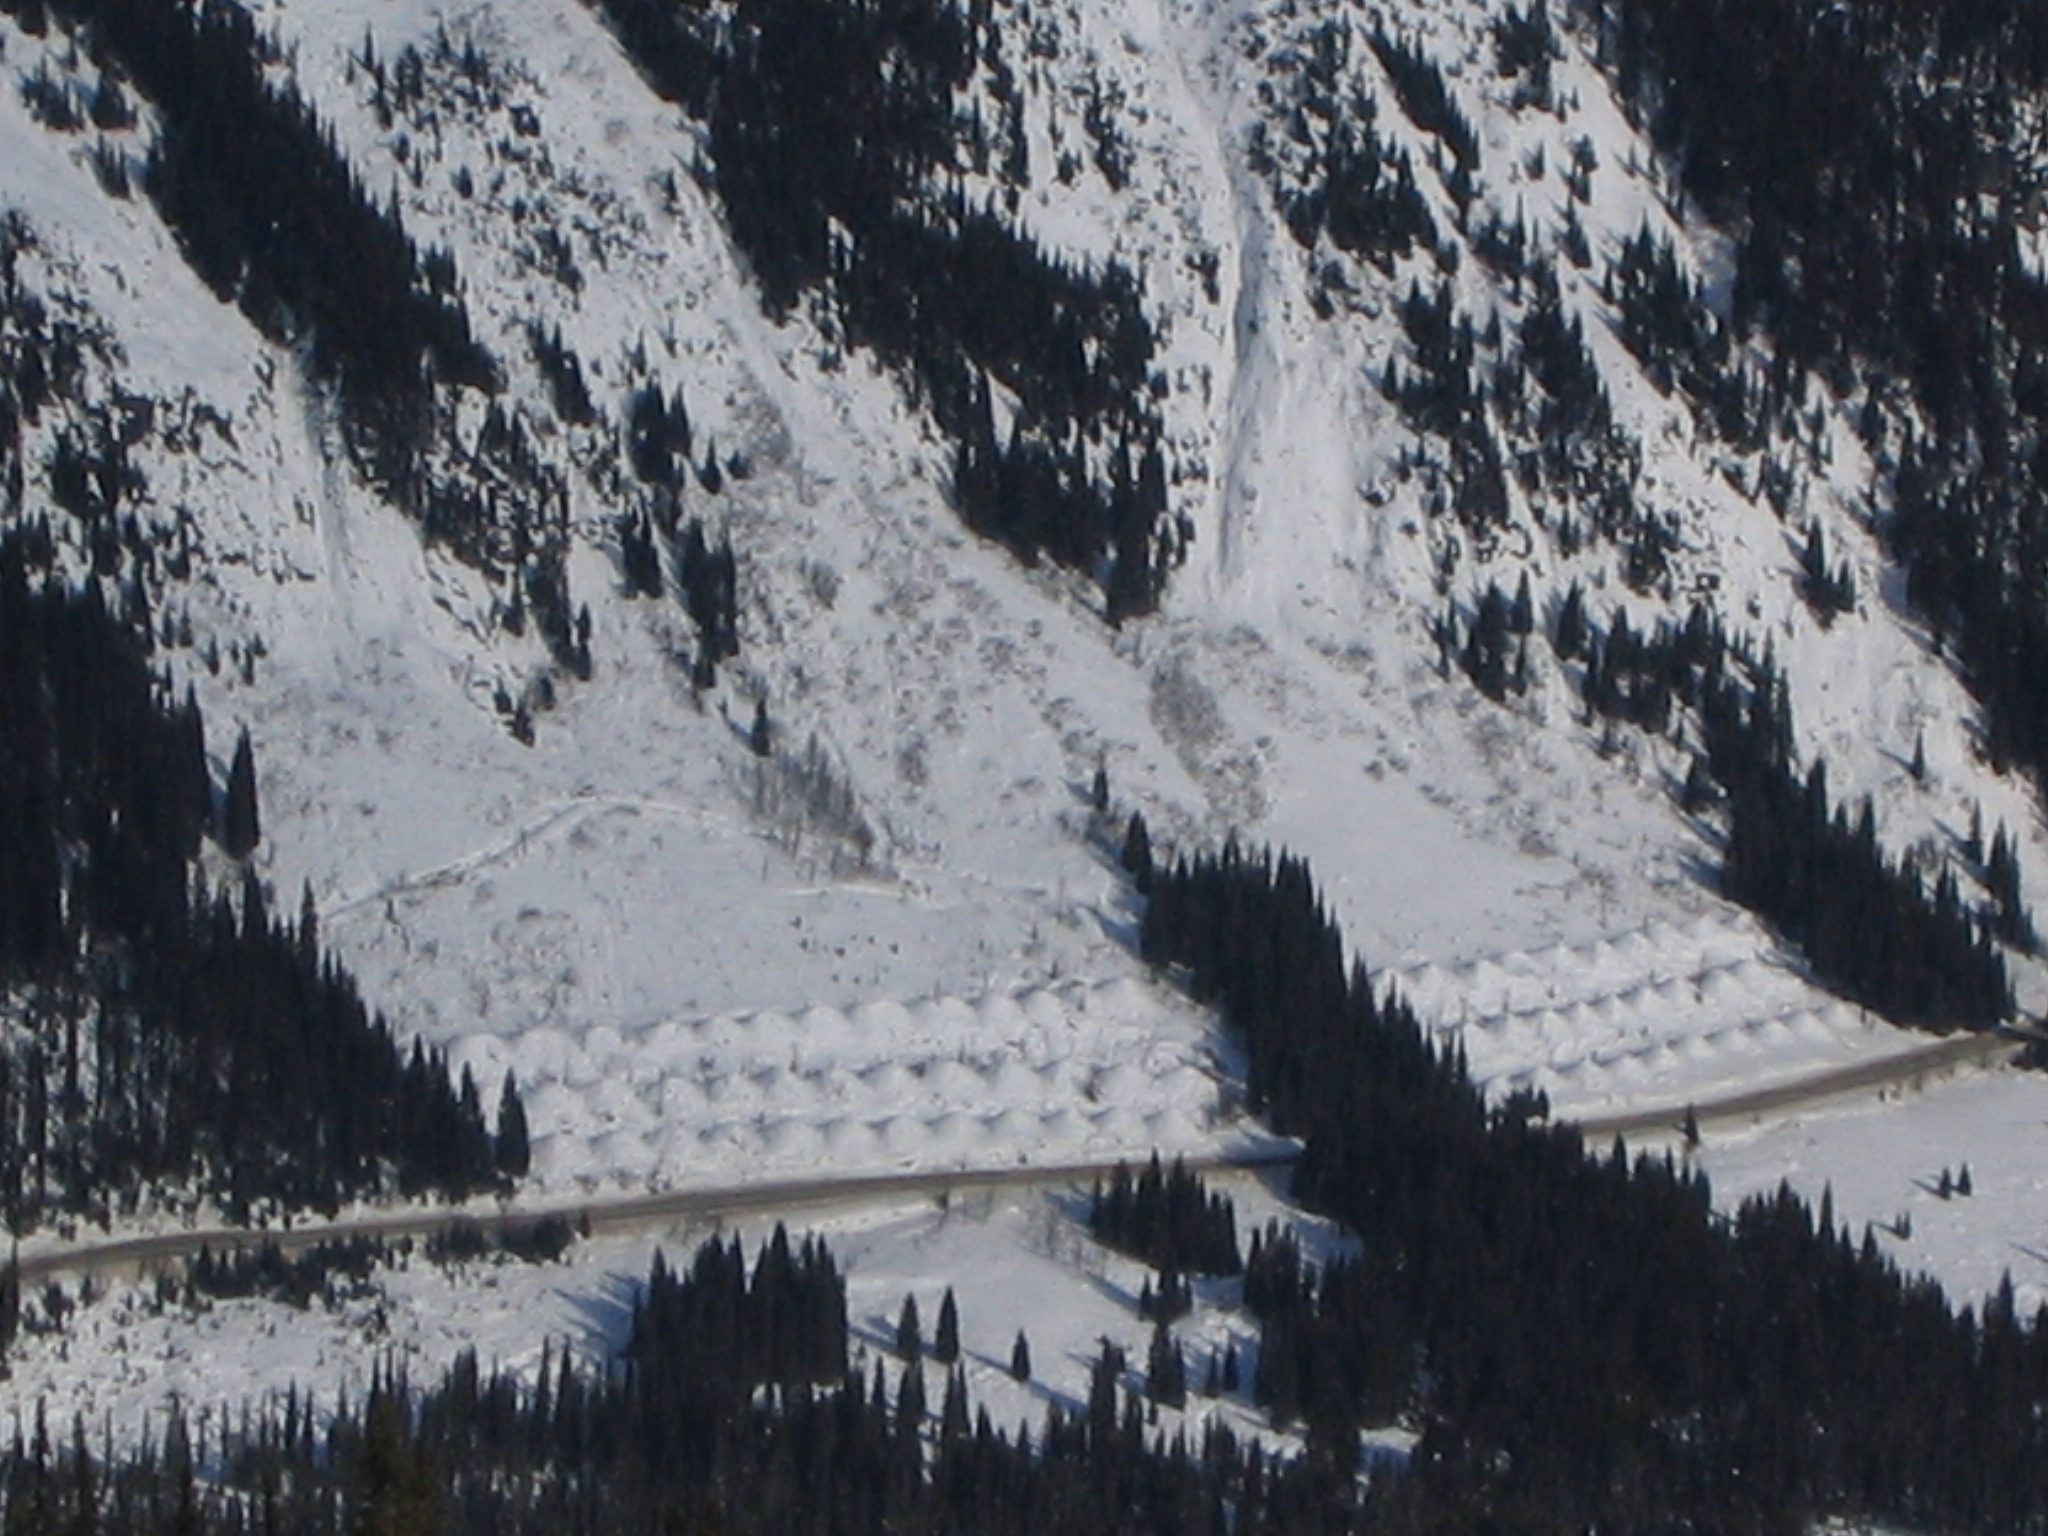 Avalanche Retarding Mounds